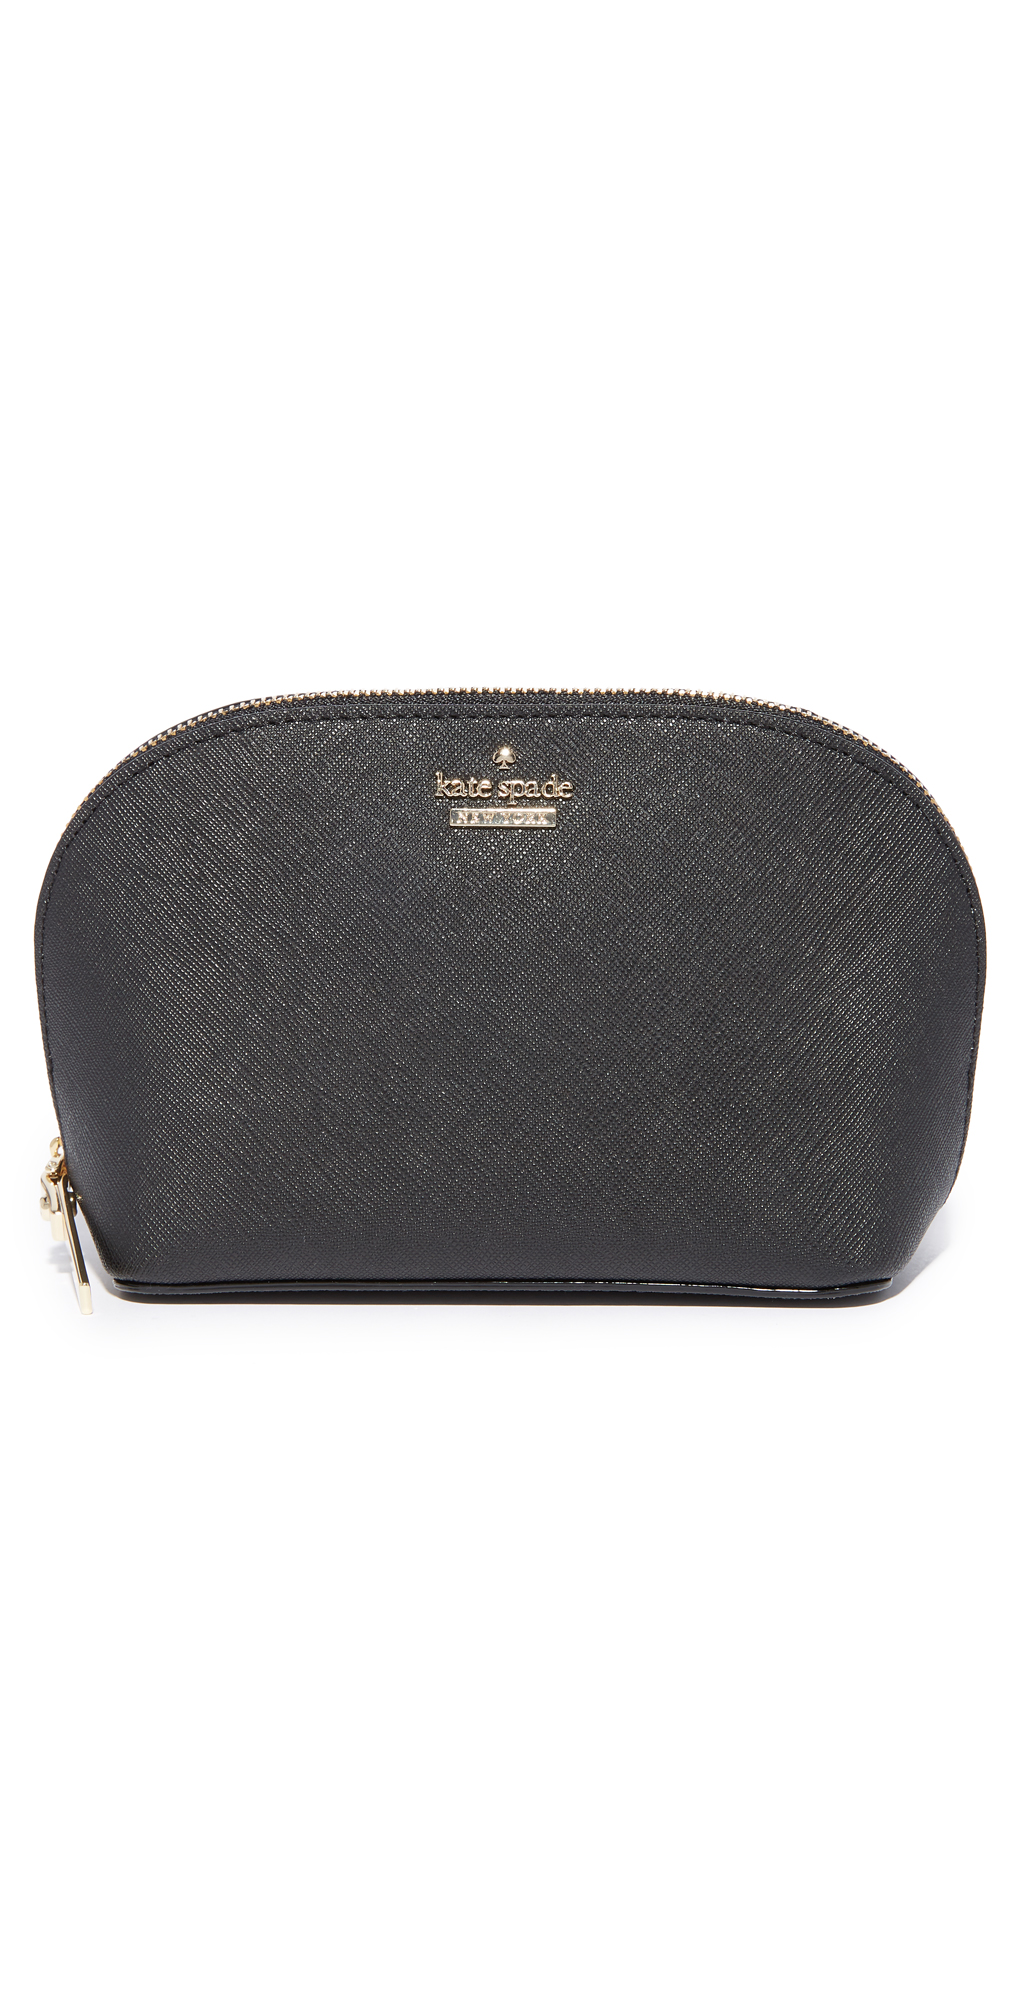 Small Abalene Cosmetic Case Kate Spade New York